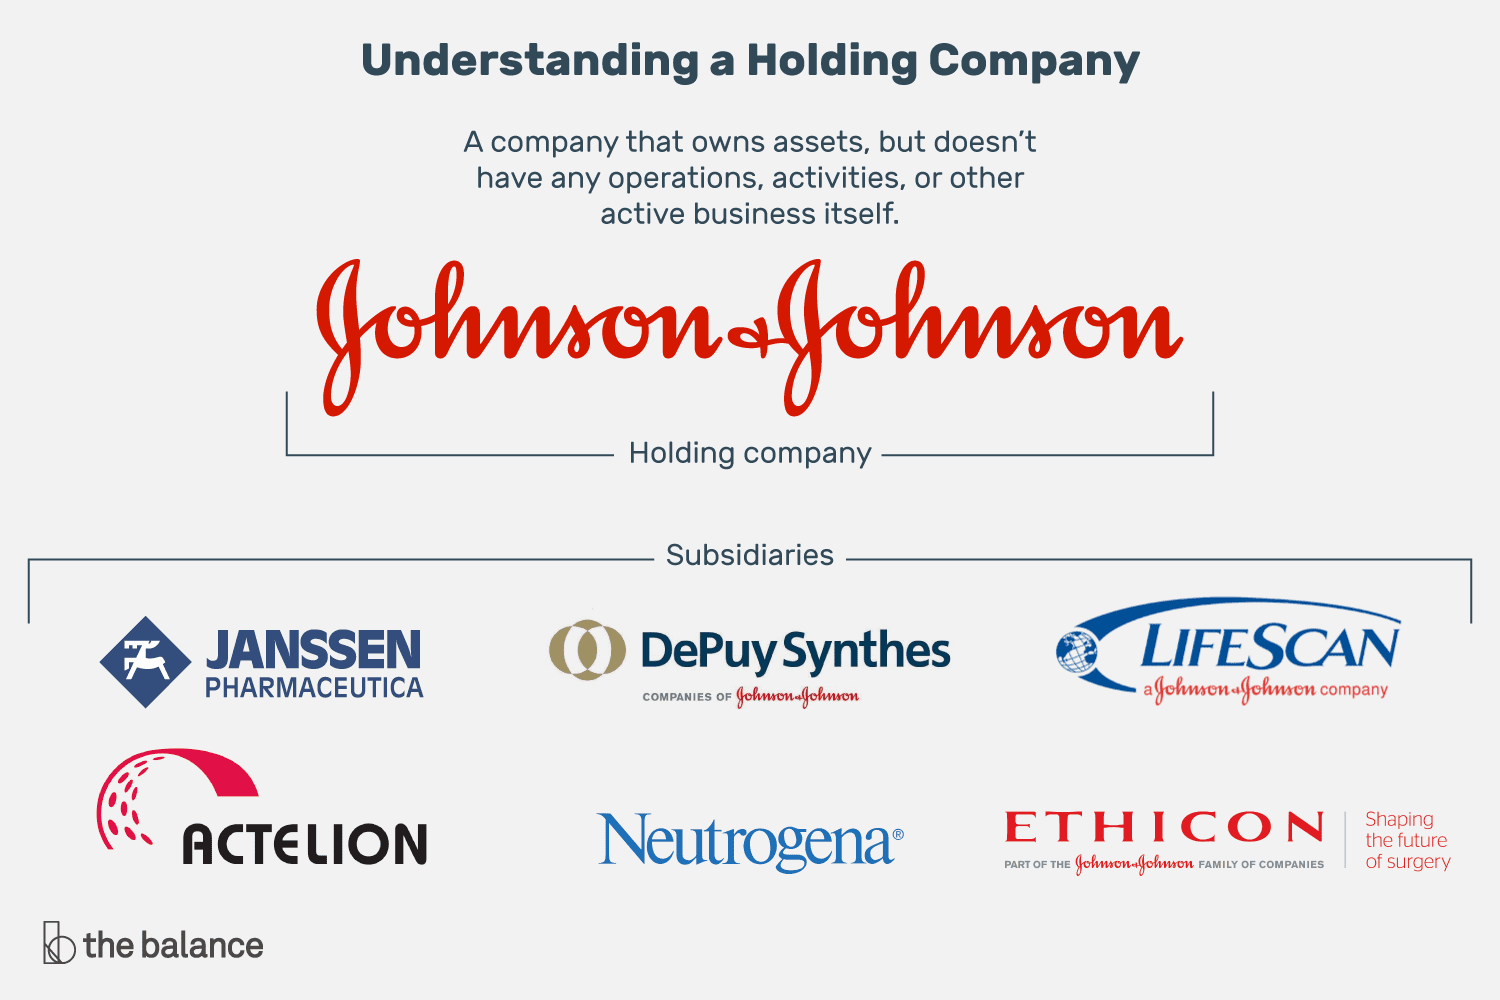 understanding a holding company